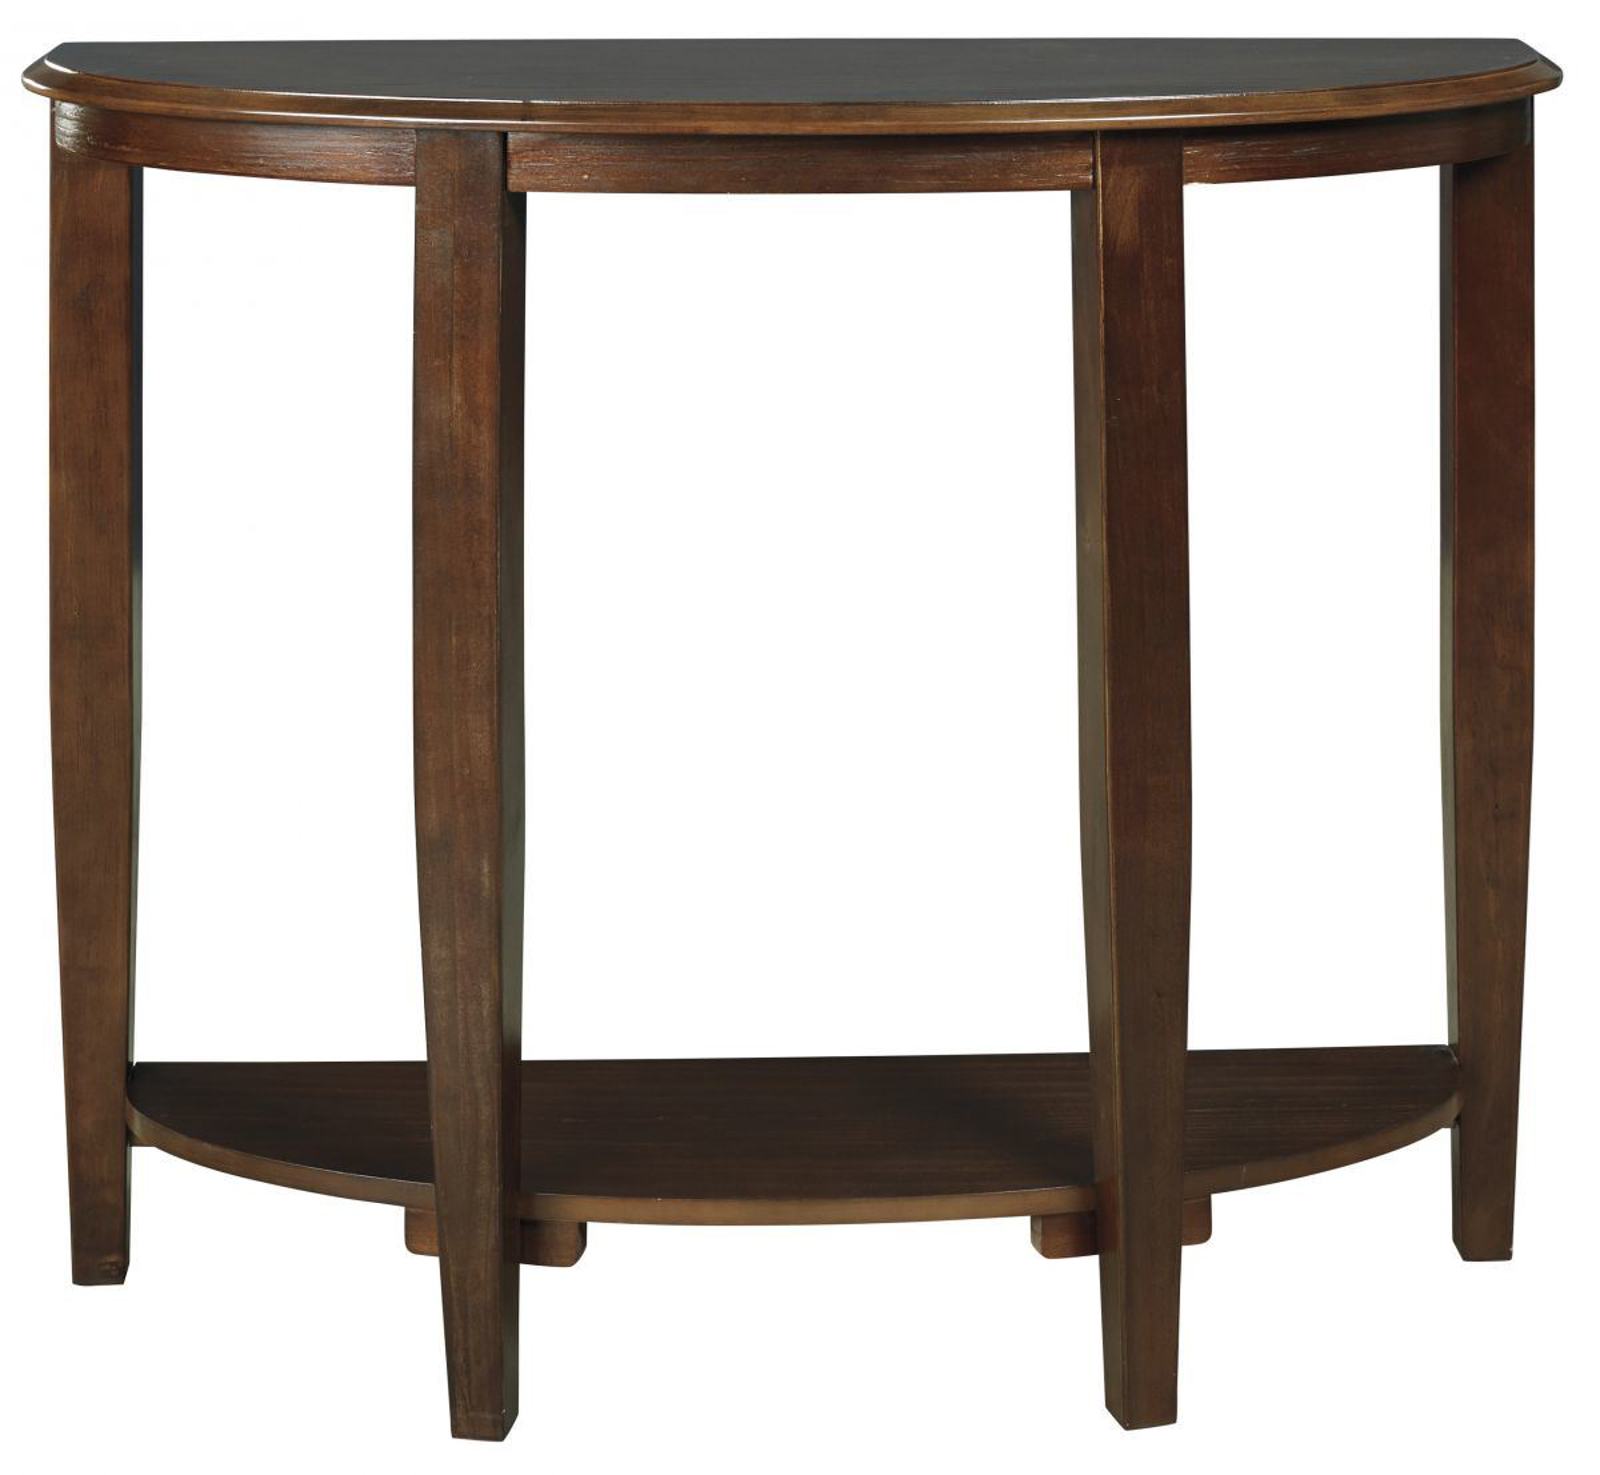 Picture of Altonwood Console Sofa Table